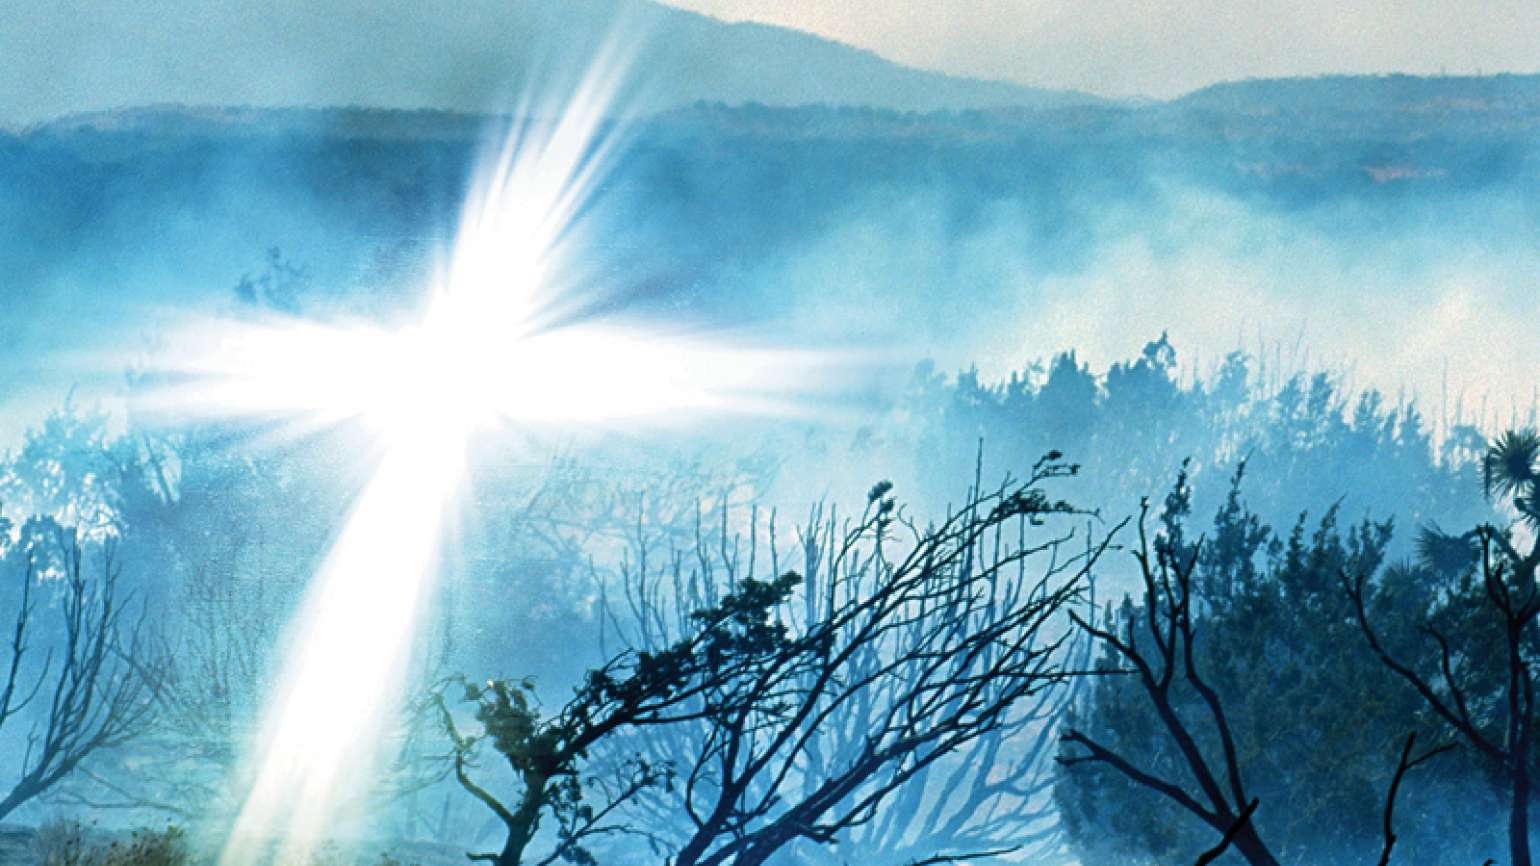 A glowing white cross appears in a smoky, fire-ravaged landscape.